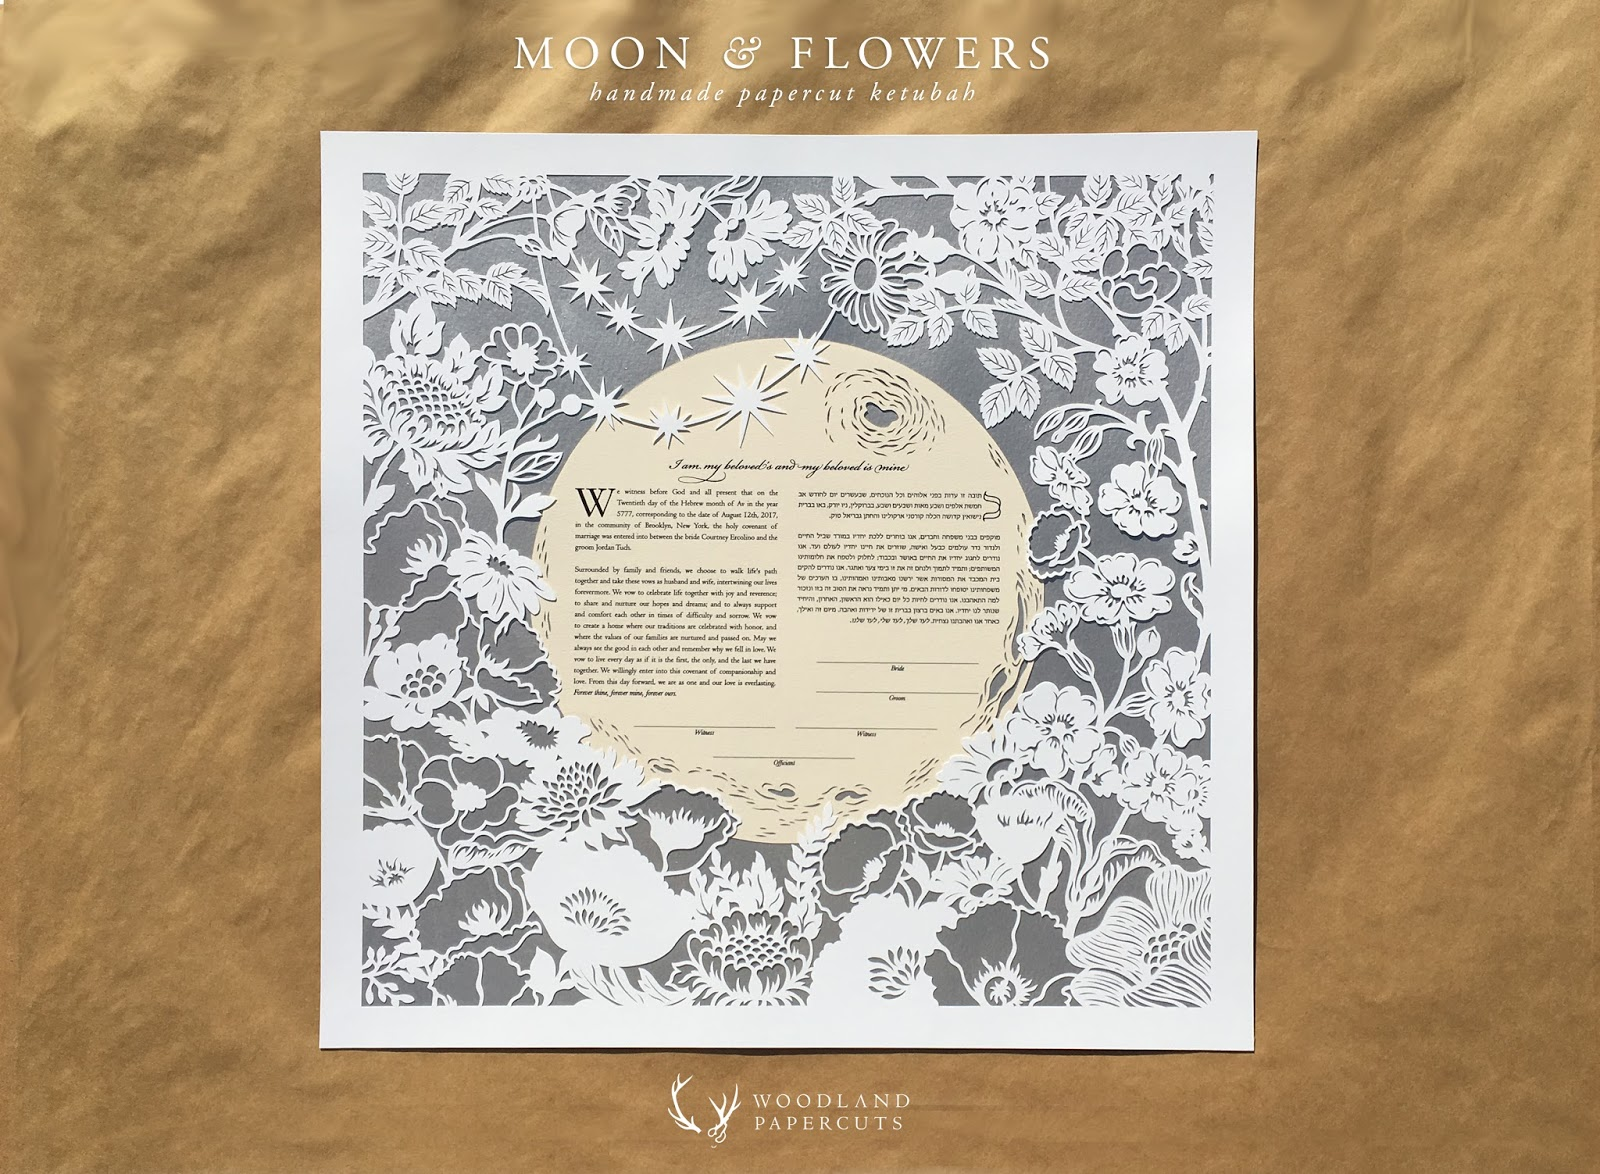 Moon & Flowers papercut ketubah by Woodland Papercuts